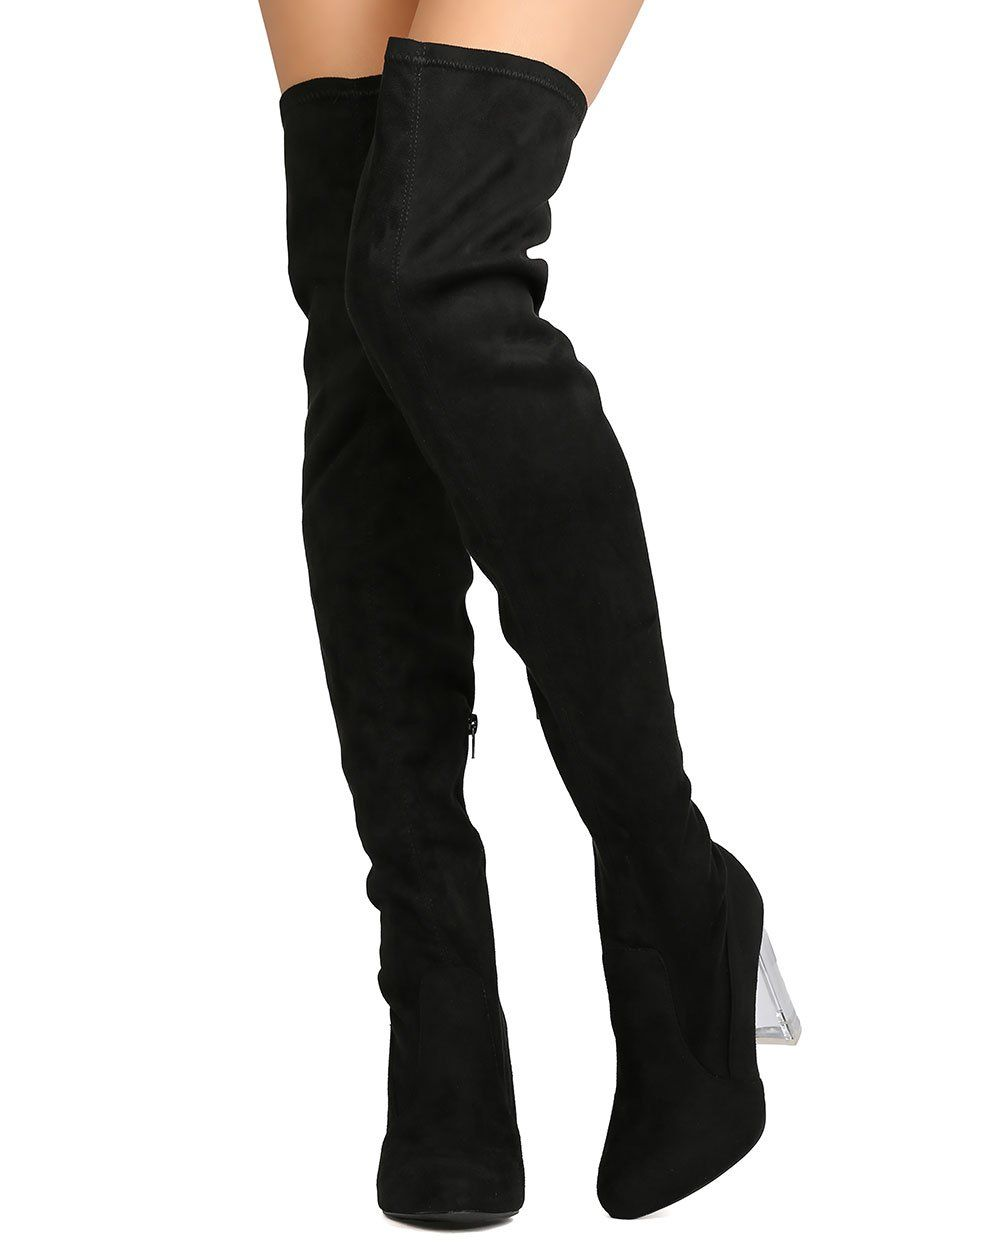 747445d6b41 Wild Diva GA41 Women Faux Suede Thigh High Lucite Block Heel Boot Black  Size  6.5     Want to know more